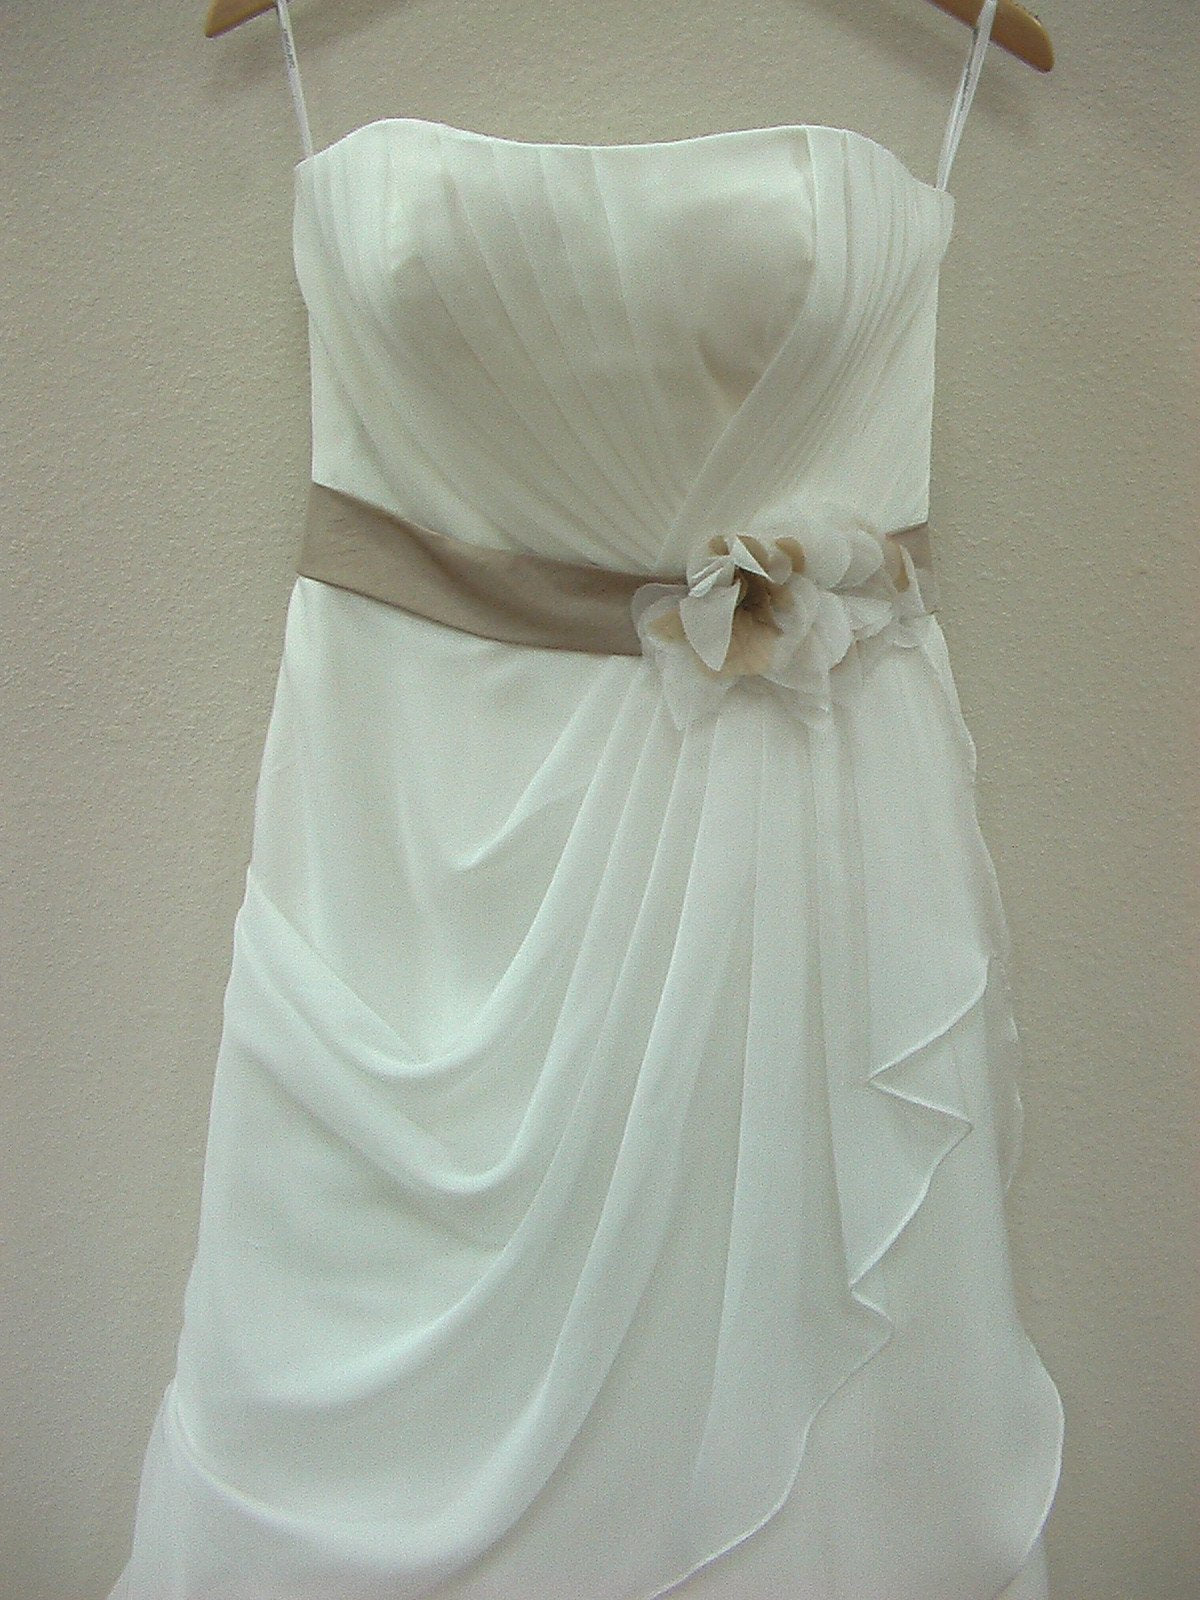 DaVinci 8465 Ivory Café size 6 In Stock Wedding Dress - Tom's Bridal